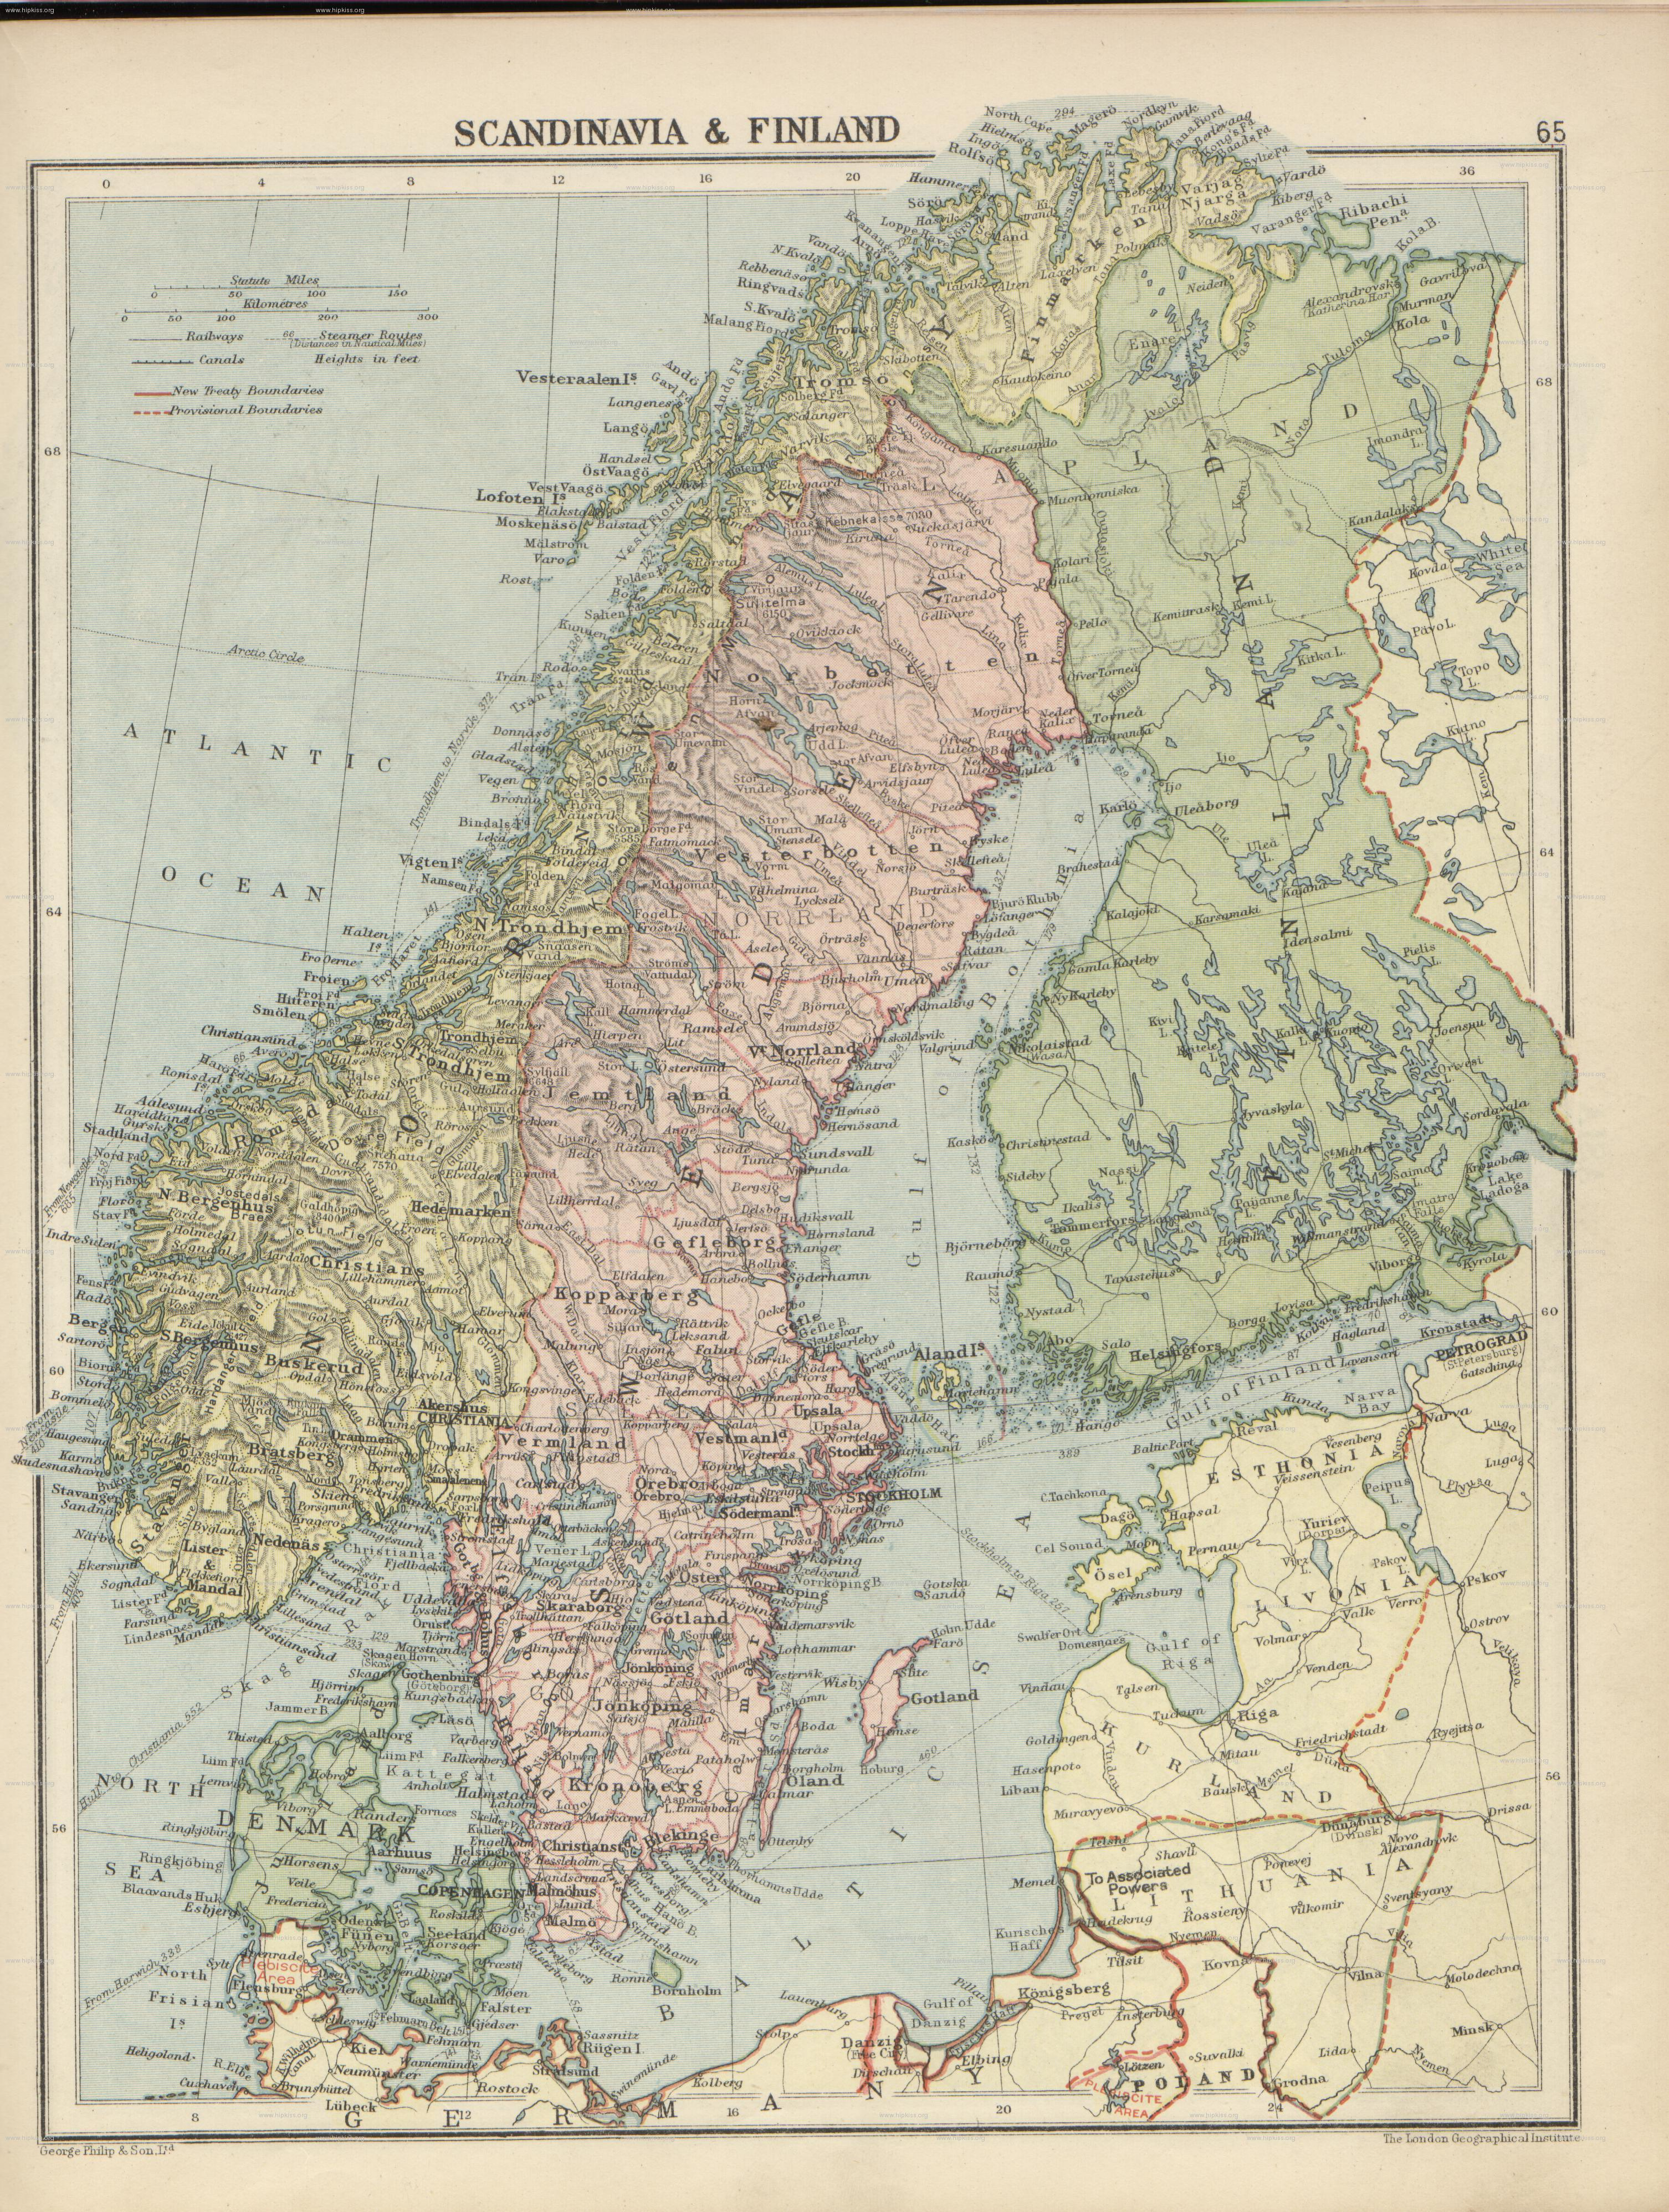 Atlas of world history with animated historical maps the nystrom world history atlas argentina historical maps of scandinavia gumiabroncs Image collections